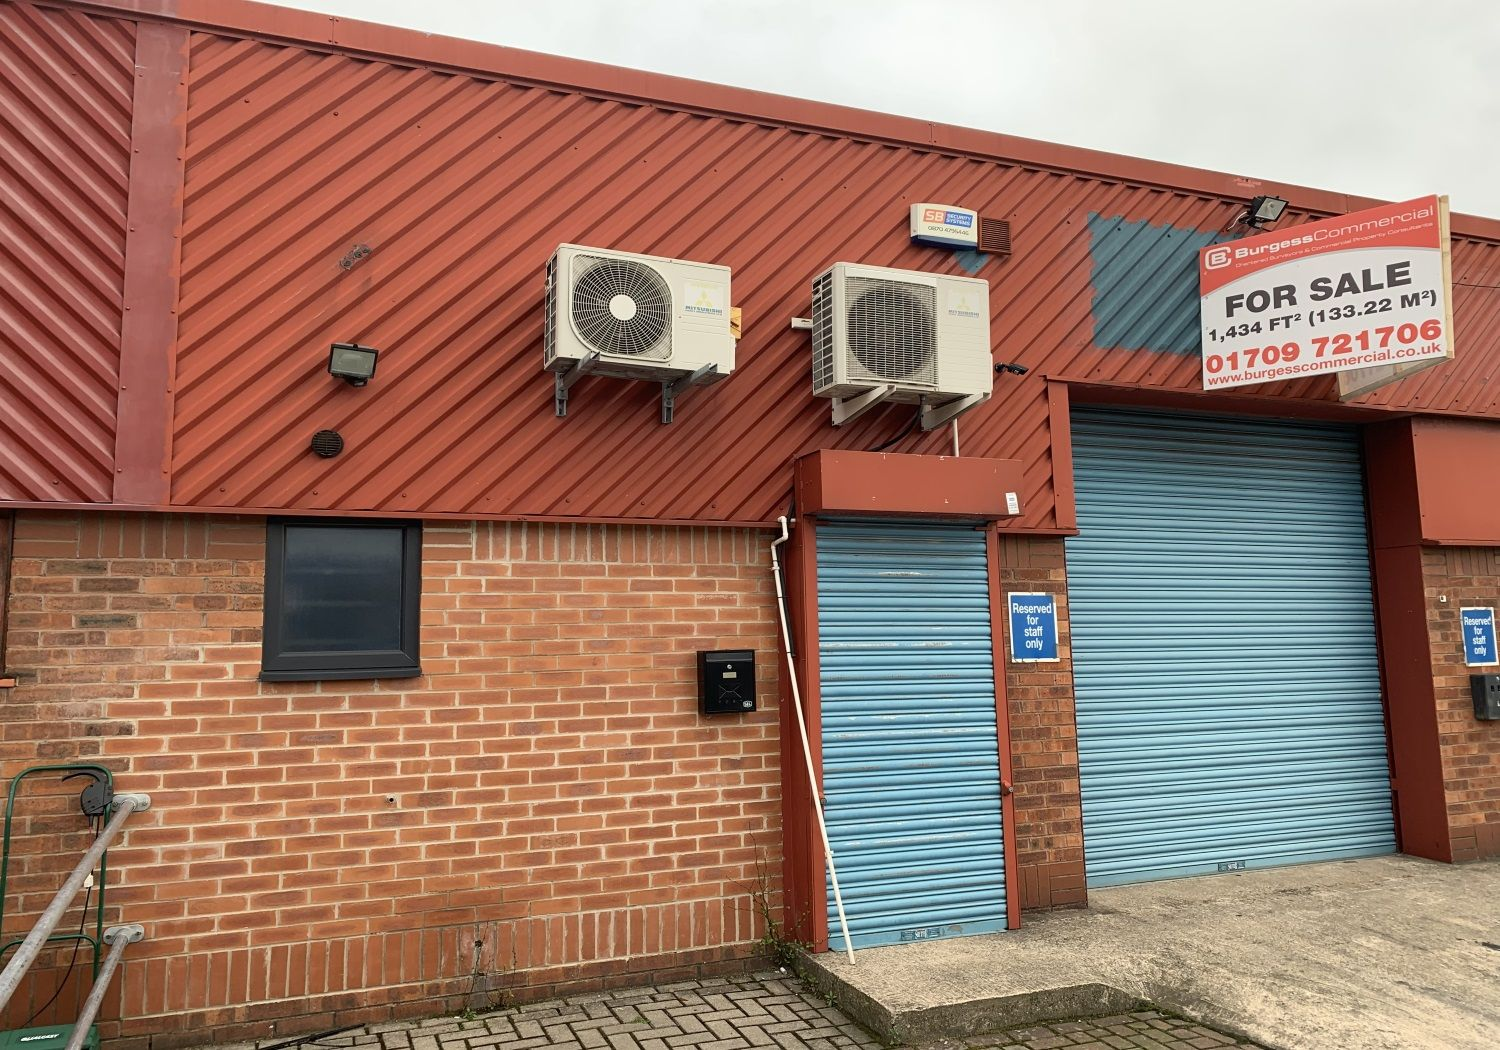 Modern industrial unit for sale with solar panels.